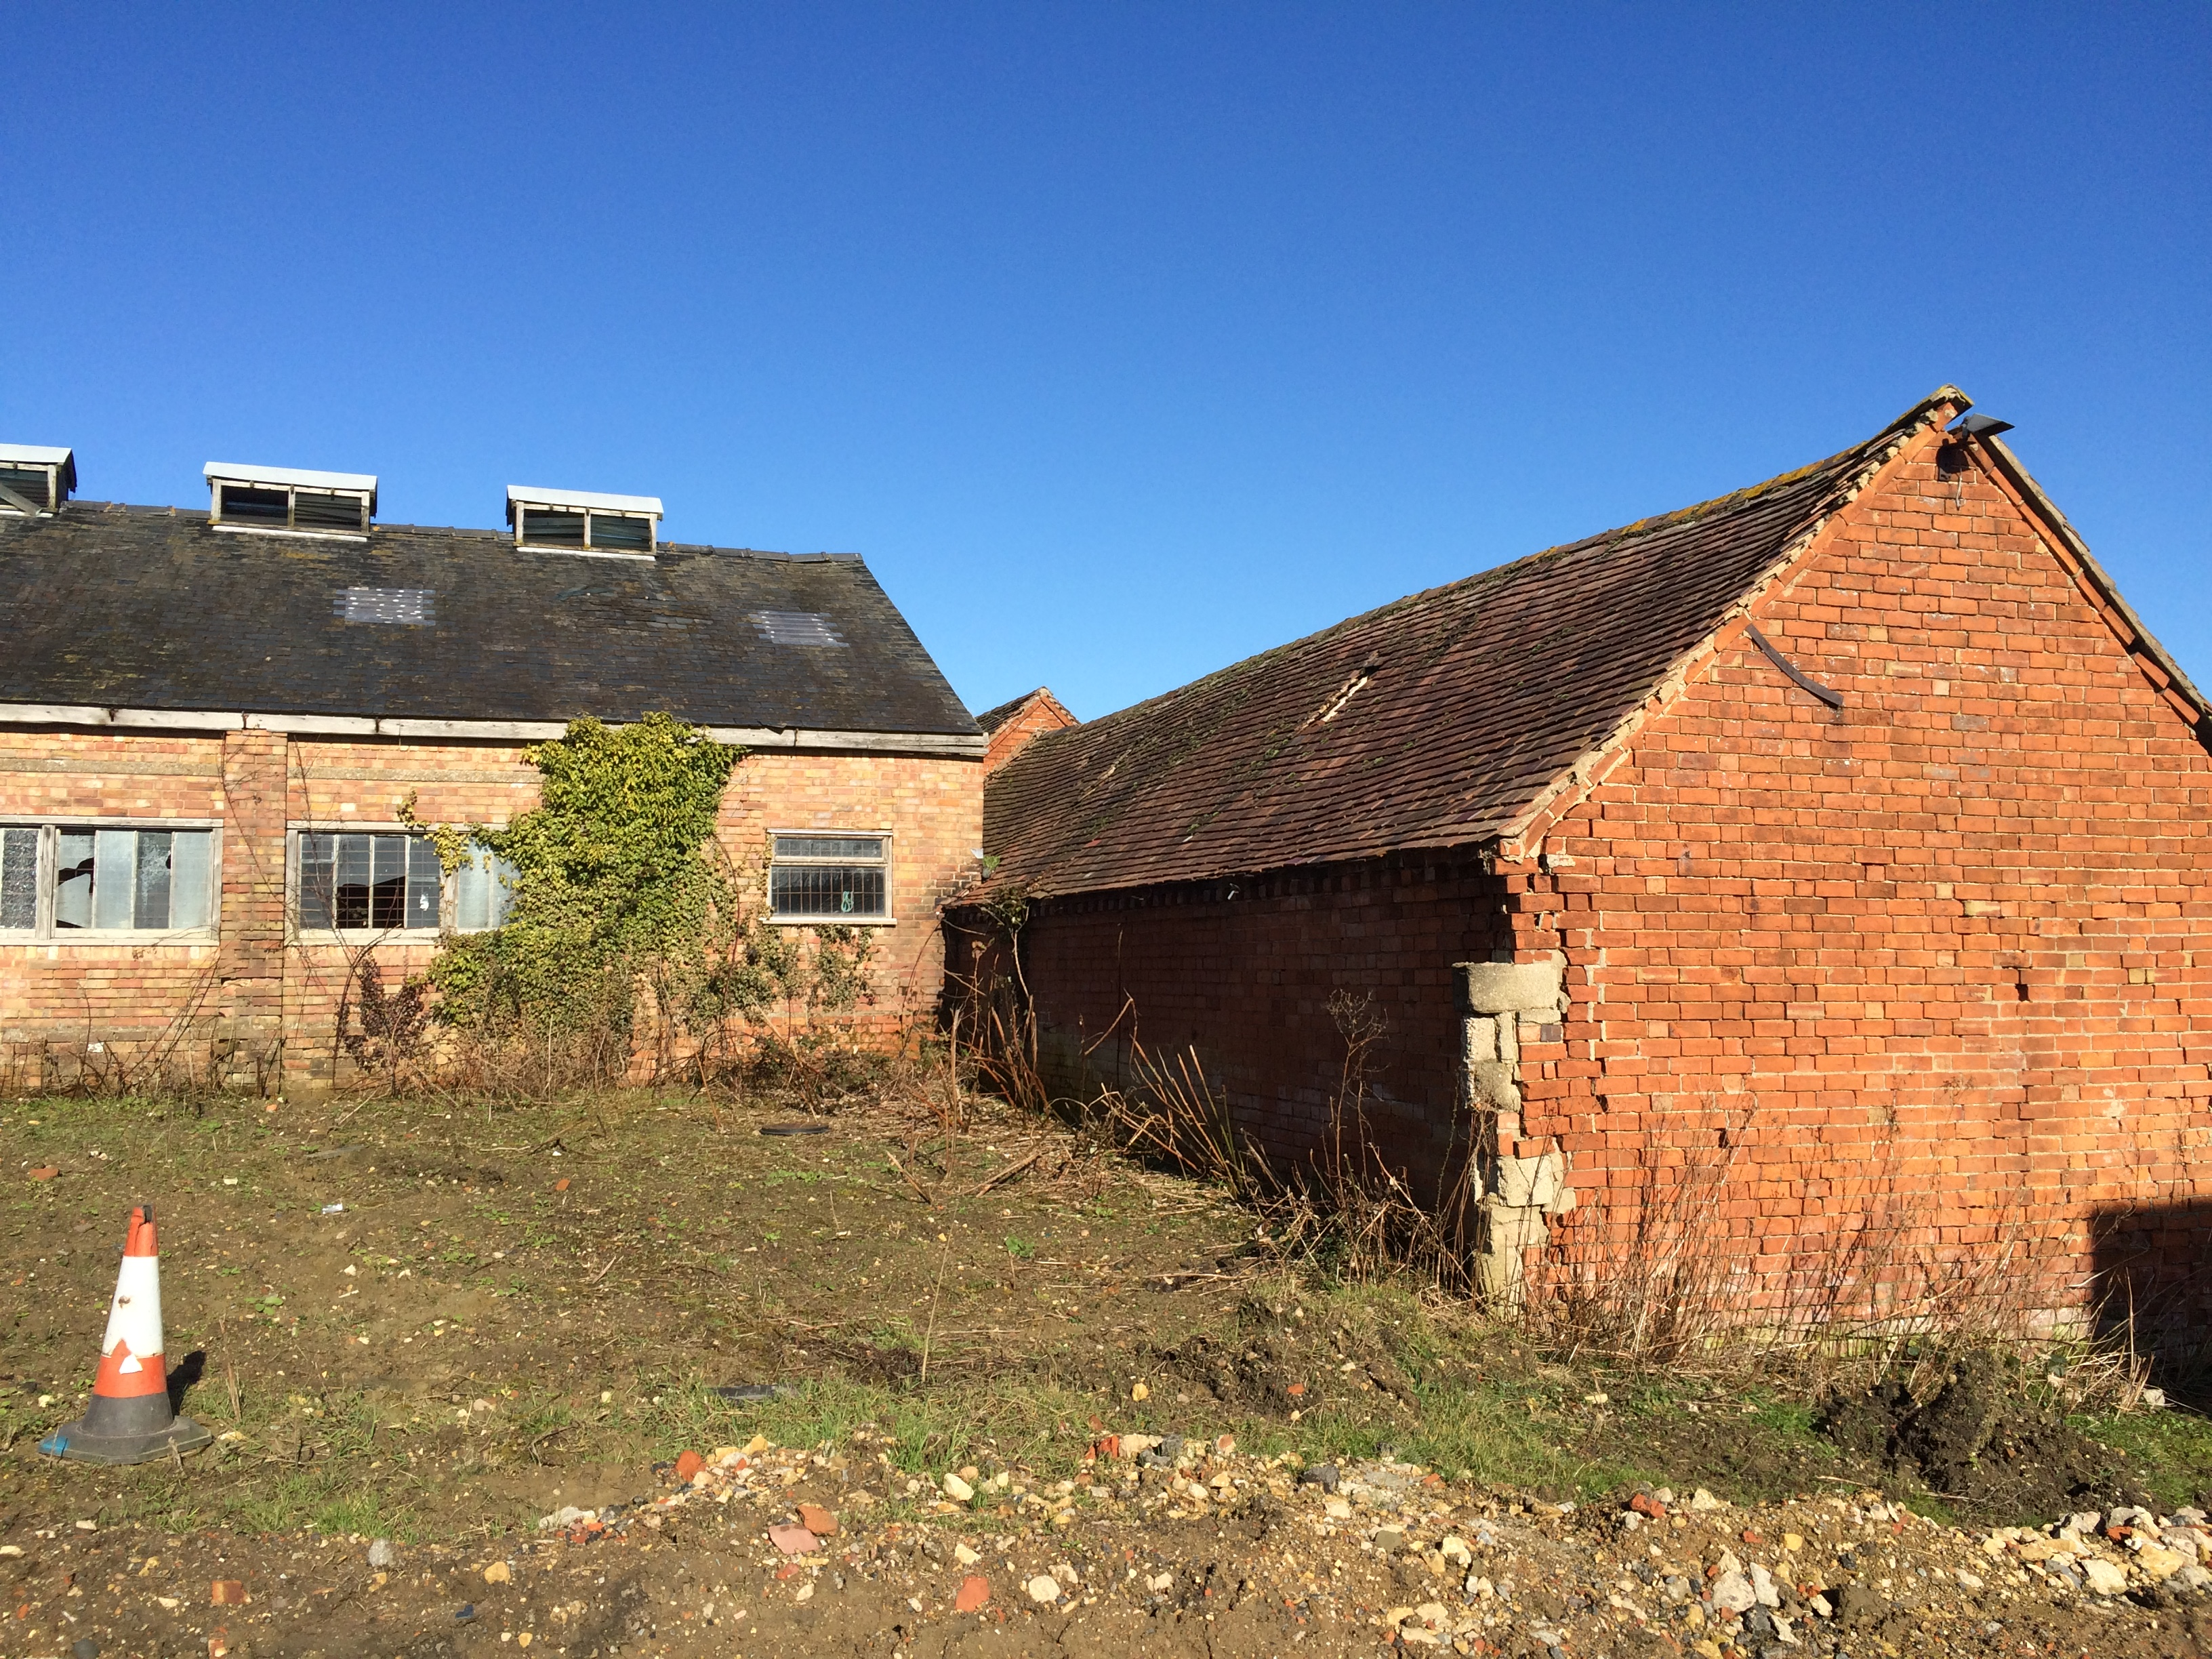 Barn conversions - is the permitted development clearer?